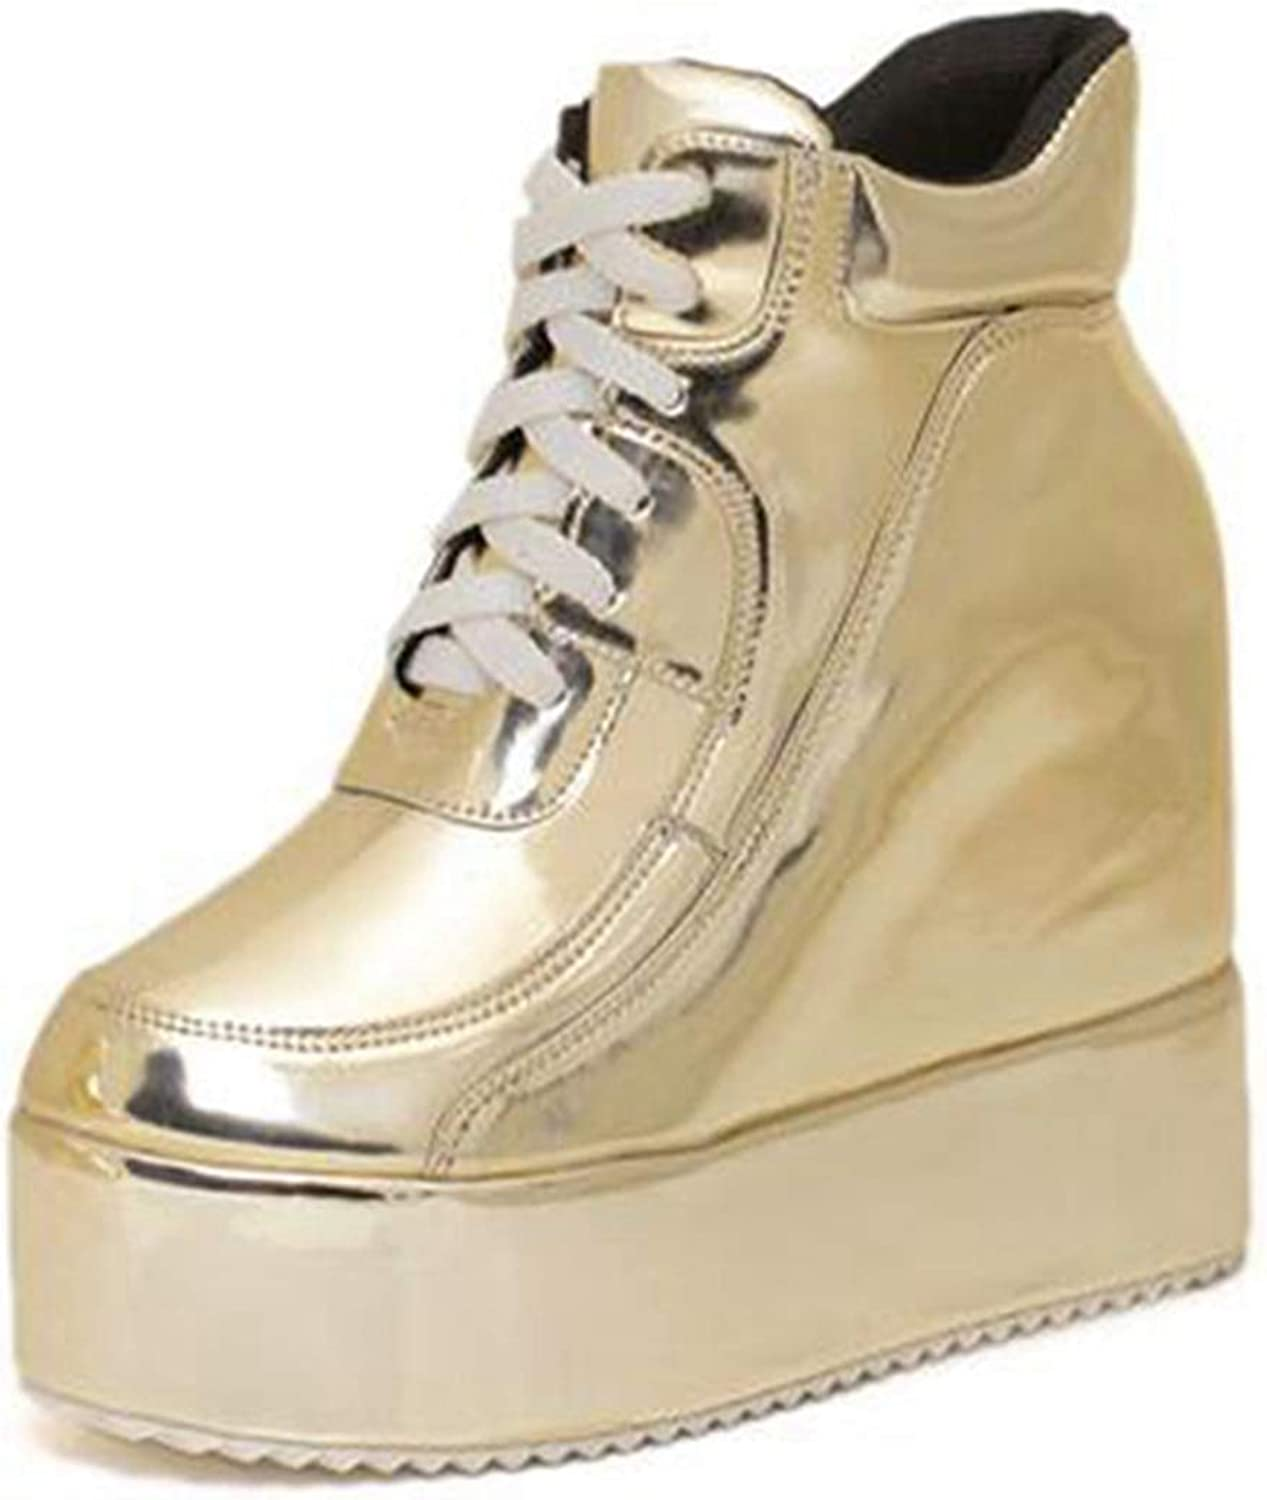 DOSOMI Women Hidden Wedge Sneakerss Platform Patent Leather Lace Up Casual Ankle Martin Boots